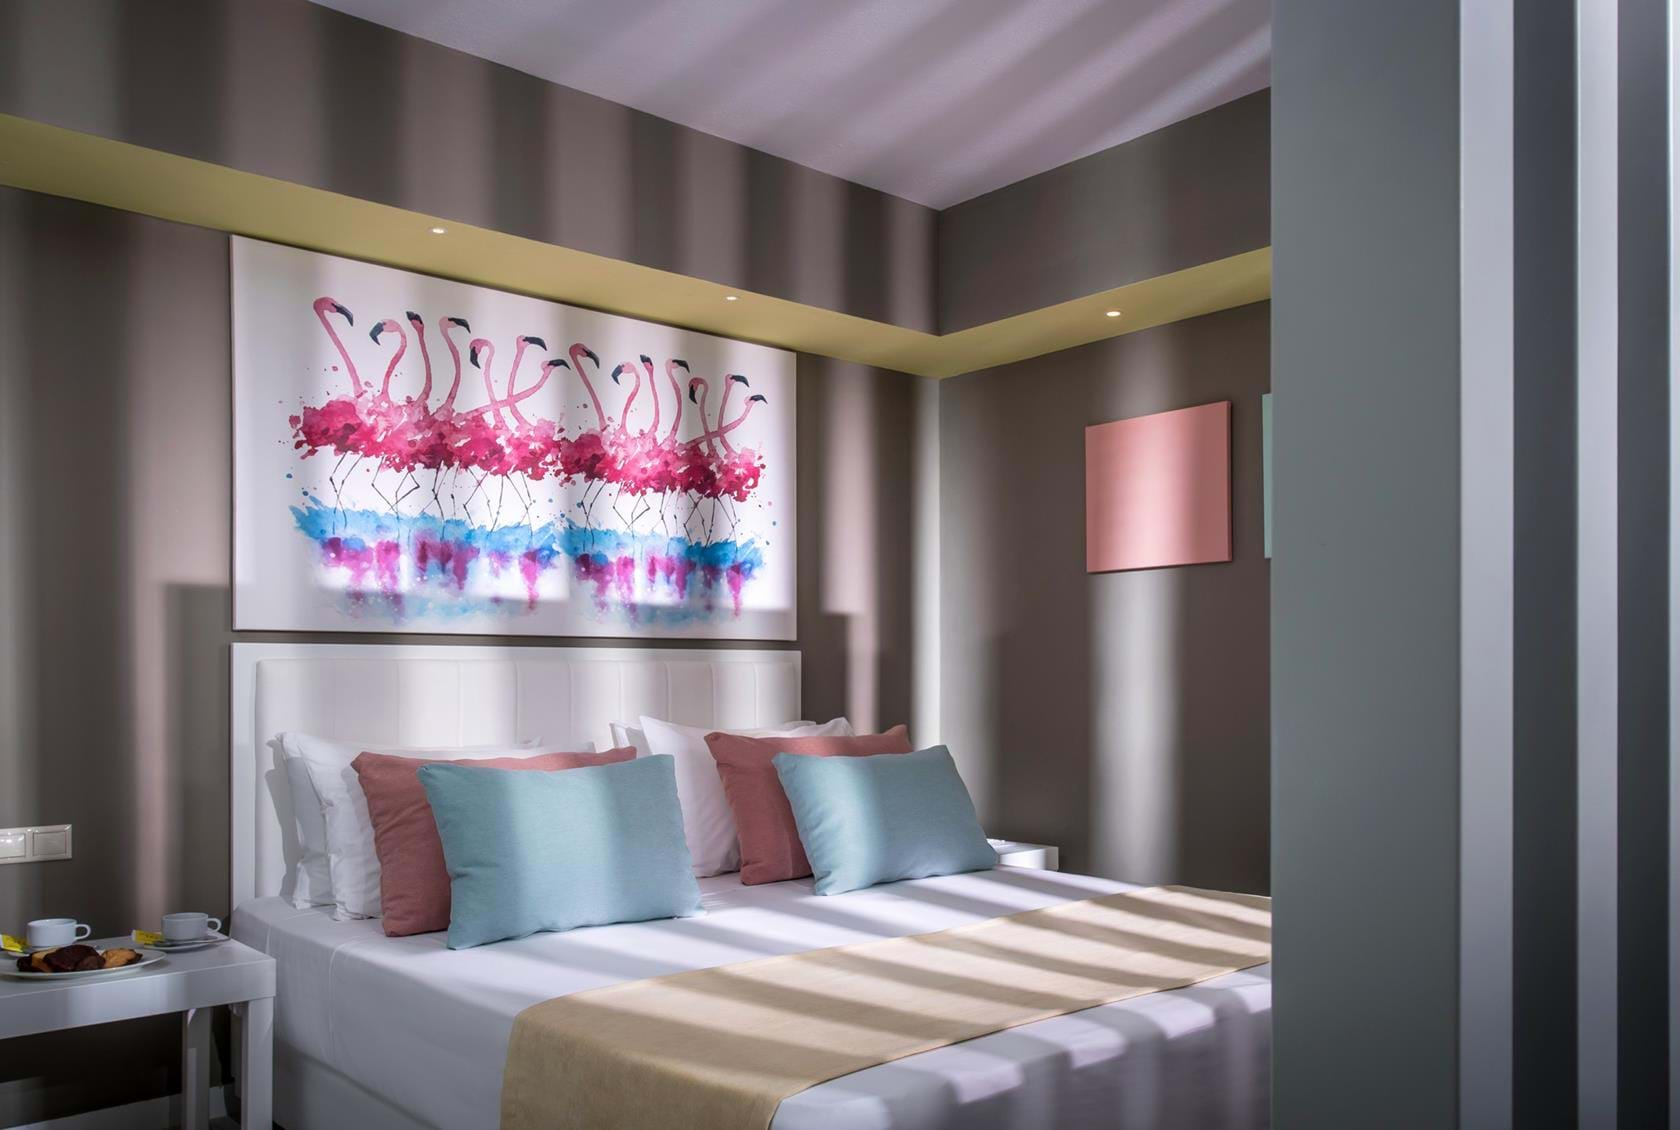 FLAMINGO ROOM